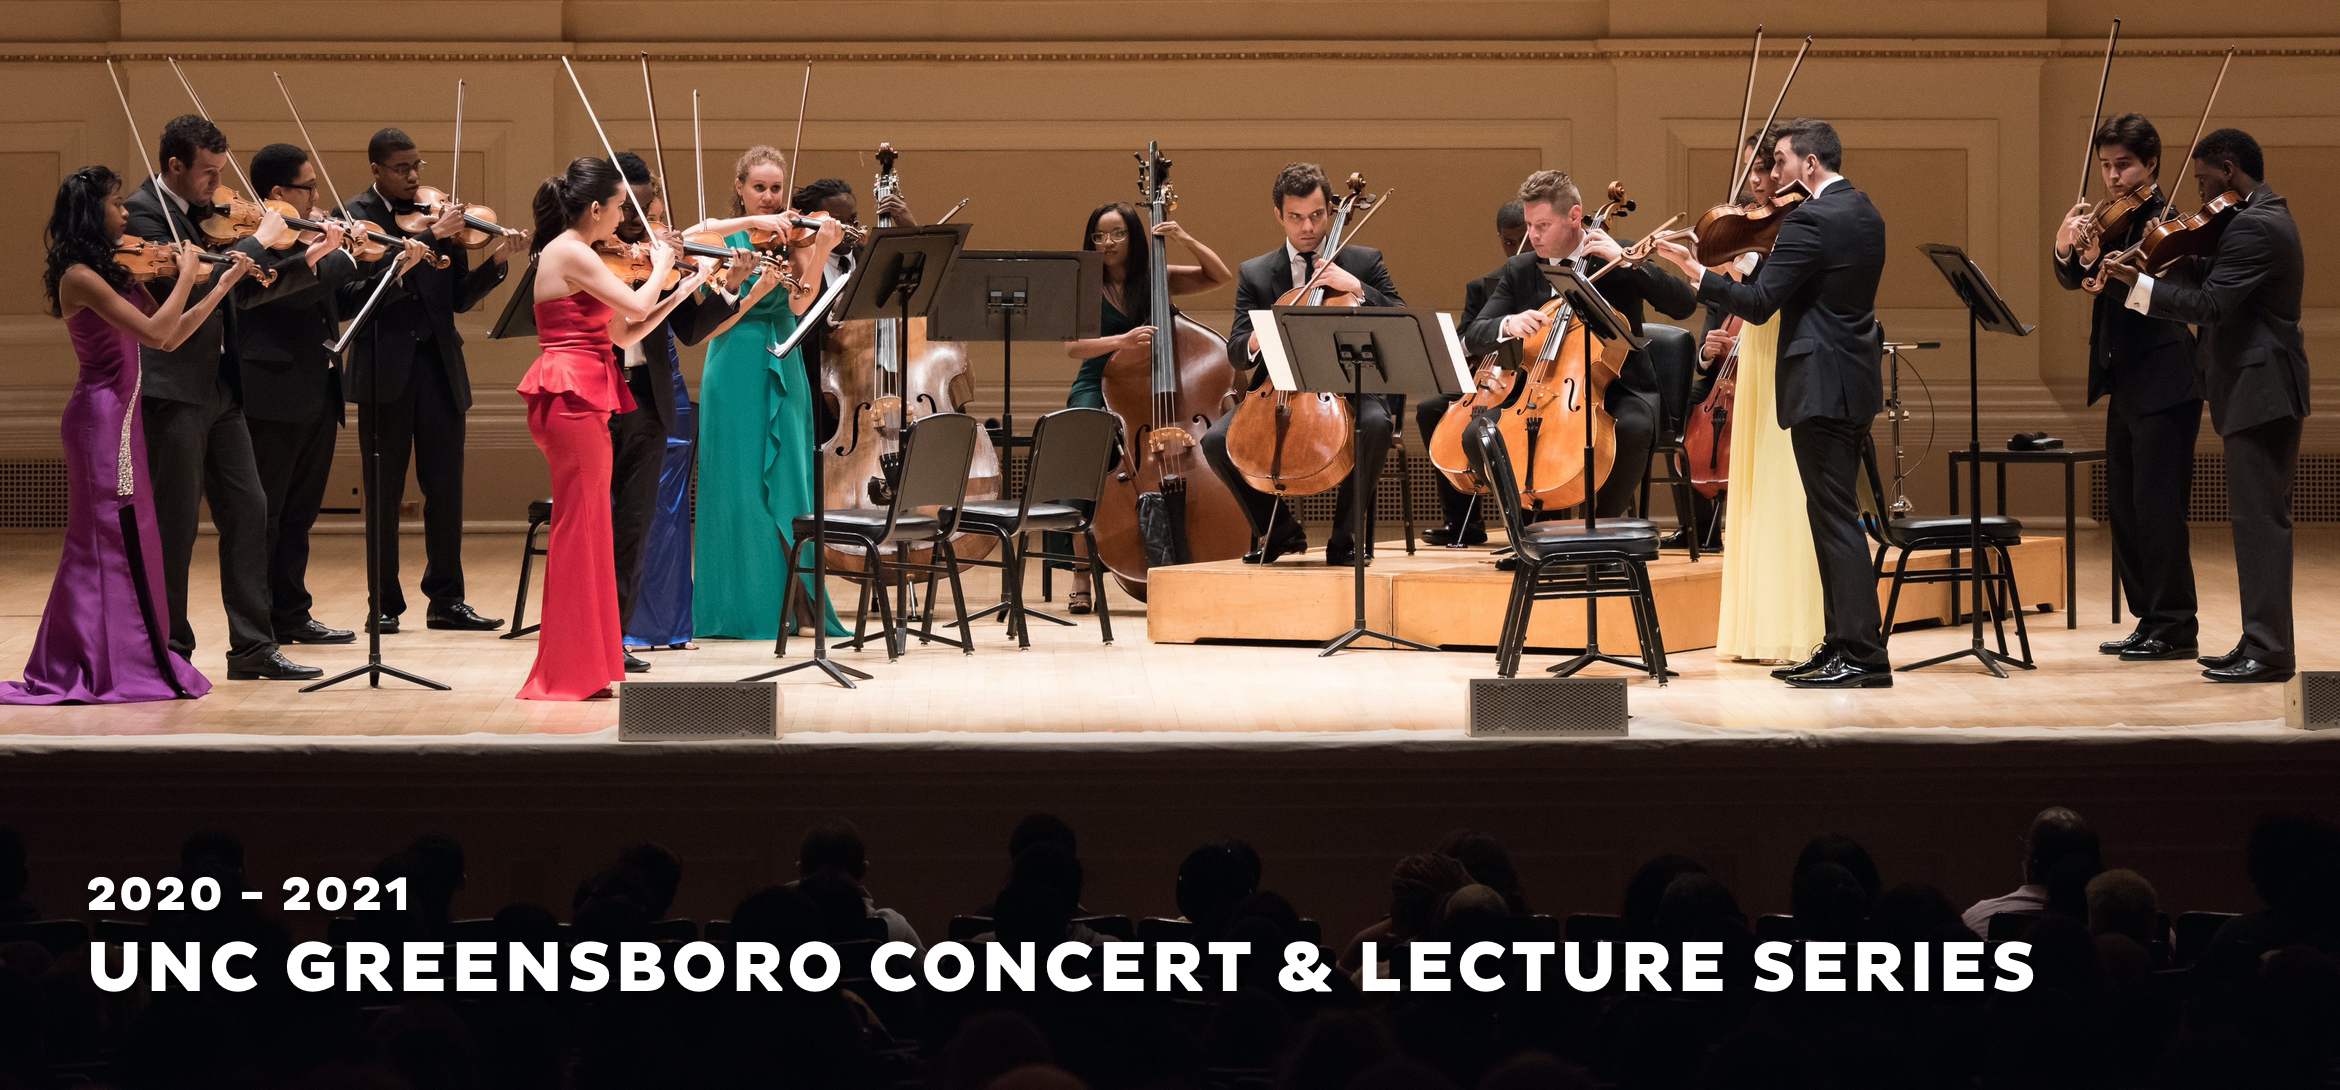 UNCG Concert and Lecture Series